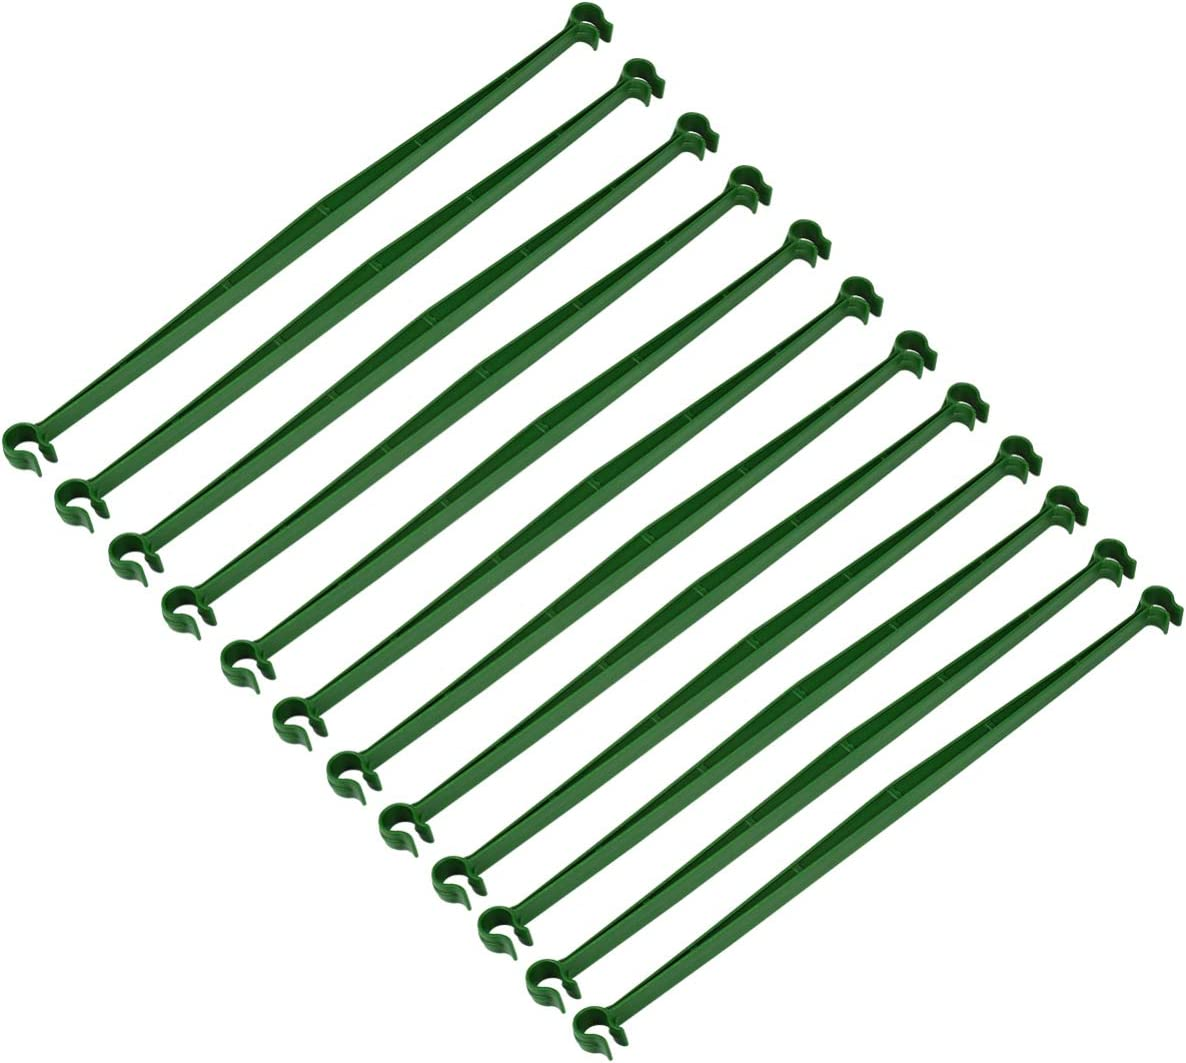 Yardwe 12PCS Stake Arms for Tomato Cage Support, Expandable Trellis Connectors for Any 11mm Diameter Plant Stakes, 2 Buckle Climbing Plants Stakes Arm